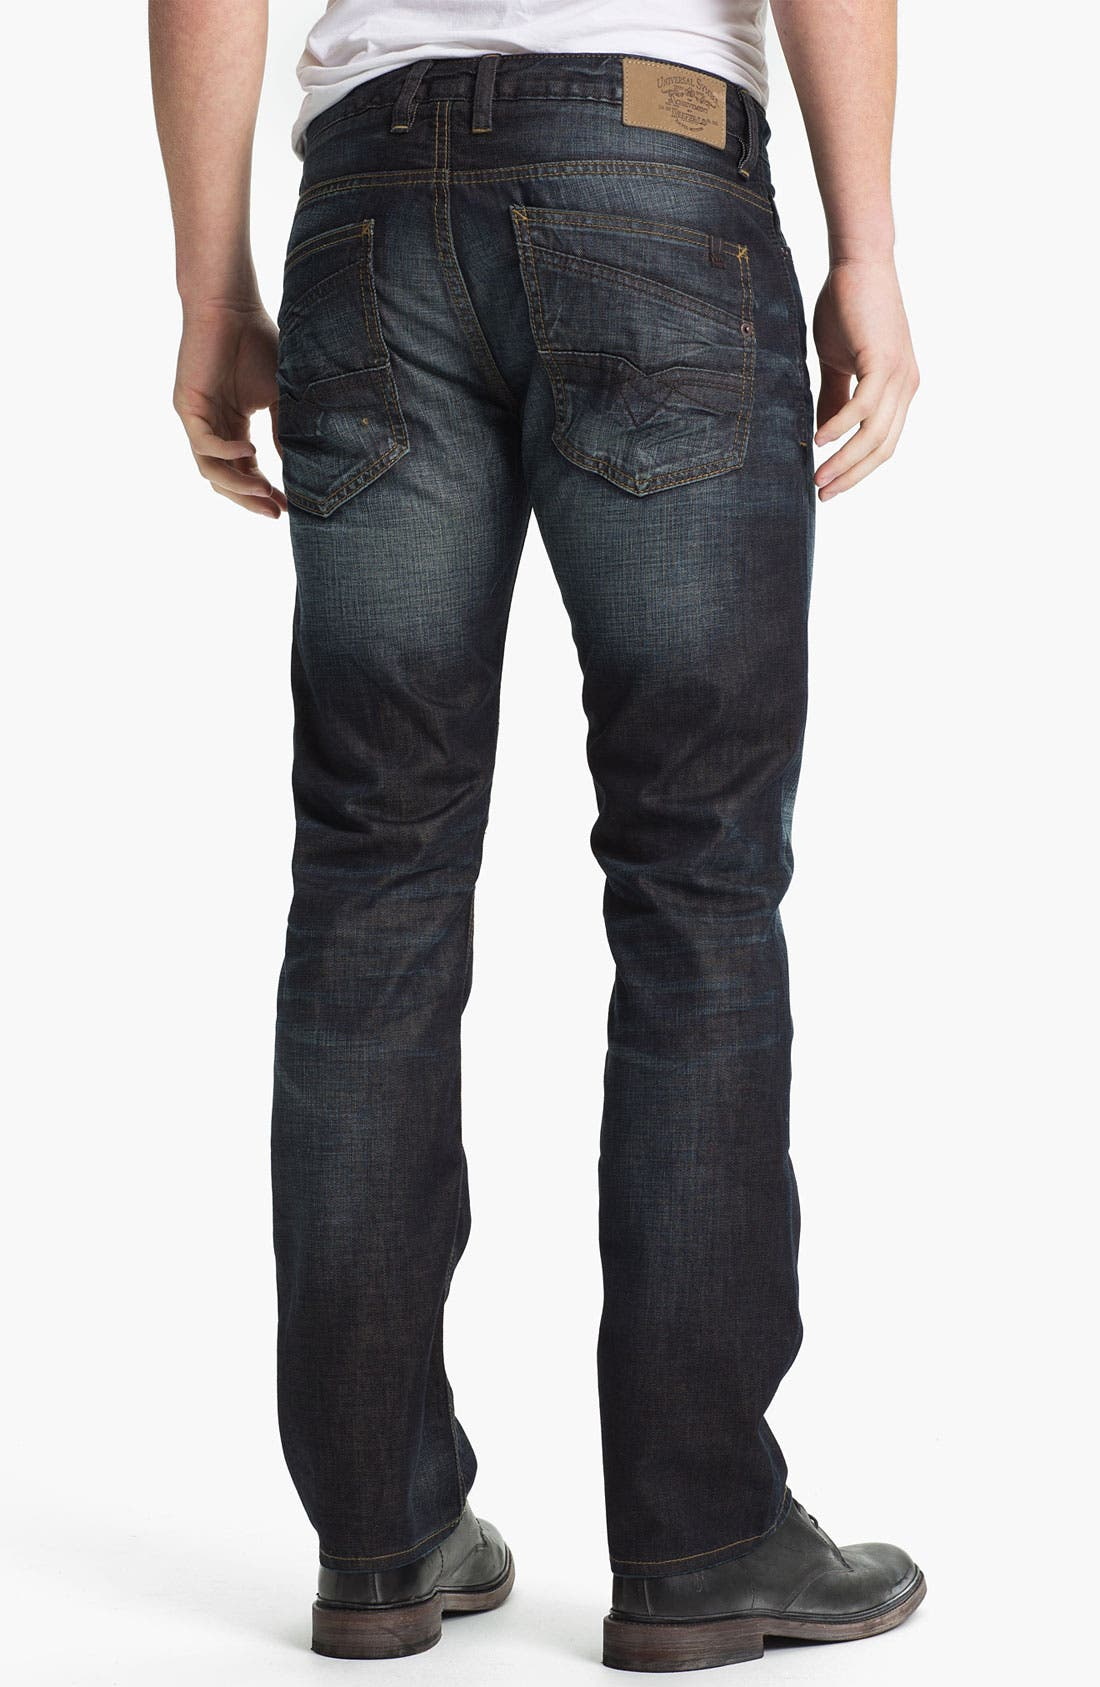 Alternate Image 2  - Buffalo Jeans 'Six' Slim Straight Leg Jeans (Veined/Dirty) (Online Exclusive)